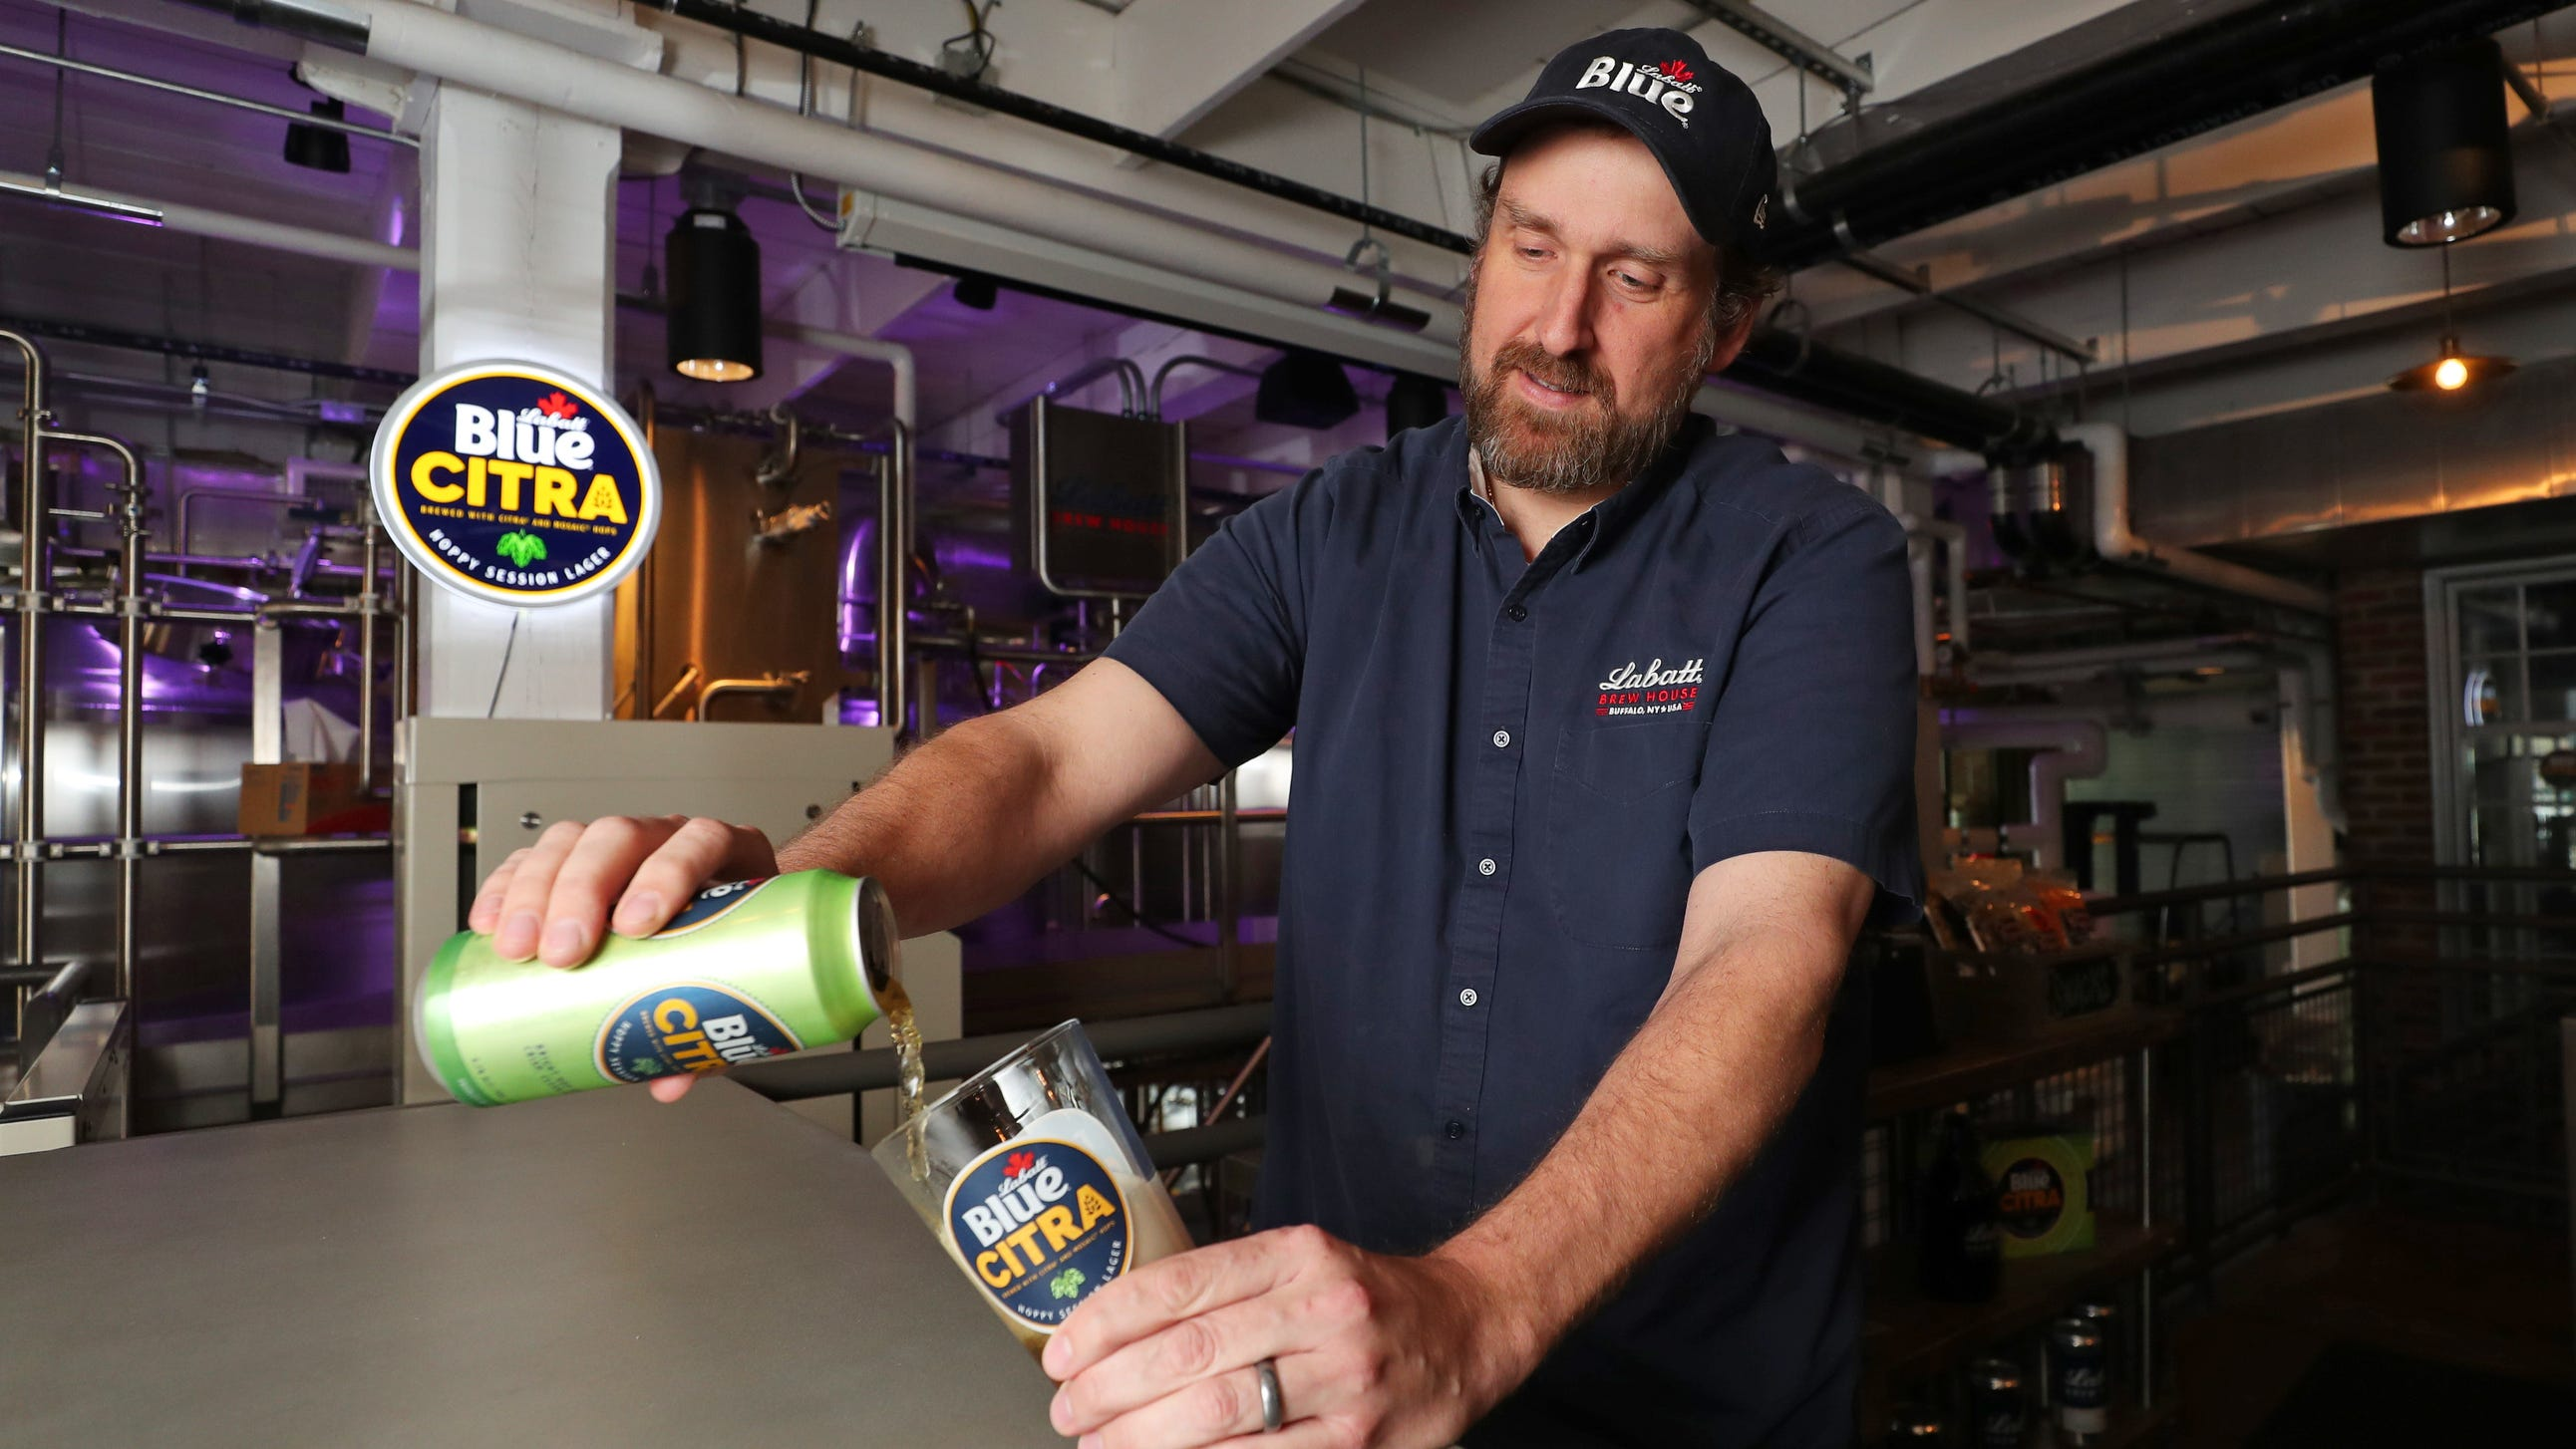 Labatt USA brewmaster Ryan Brady pours a Labatt Blue Citra at The Labatt Brew House in Buffalo, NY. Photo by Bill Wippert/PicSix Creative May 20, 2019